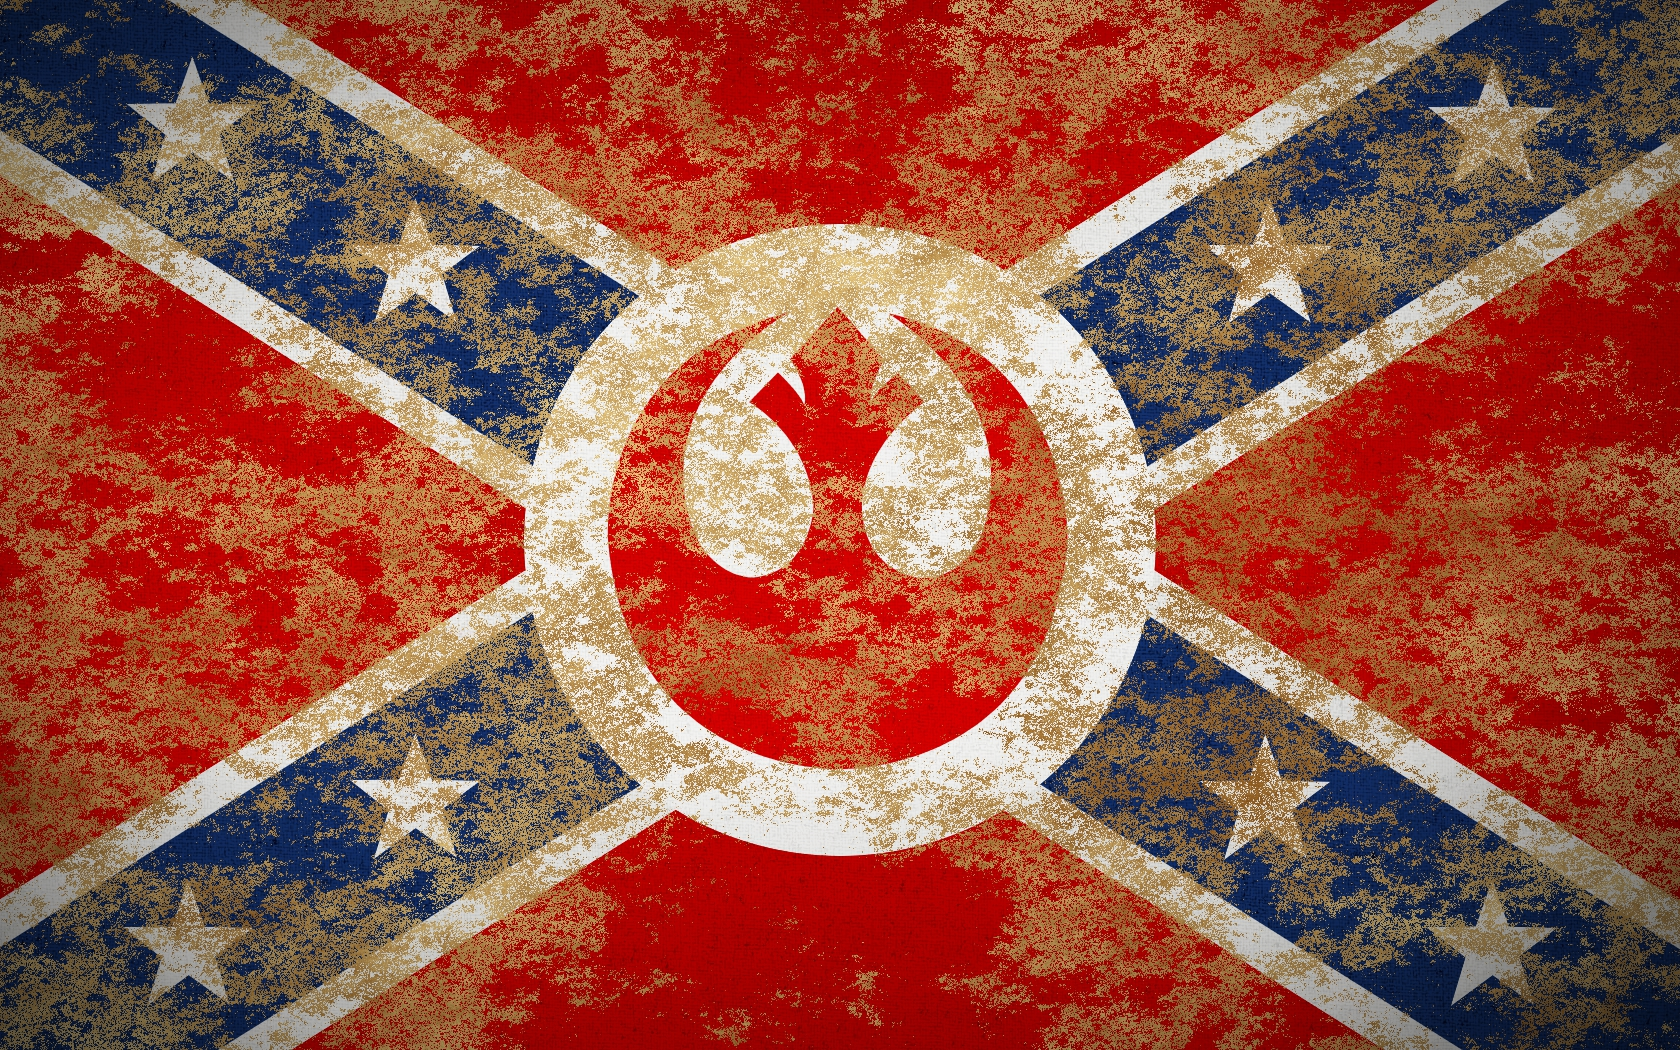 Rebel Alliance Yell (Rebel Confederate Flag) image - Le ...